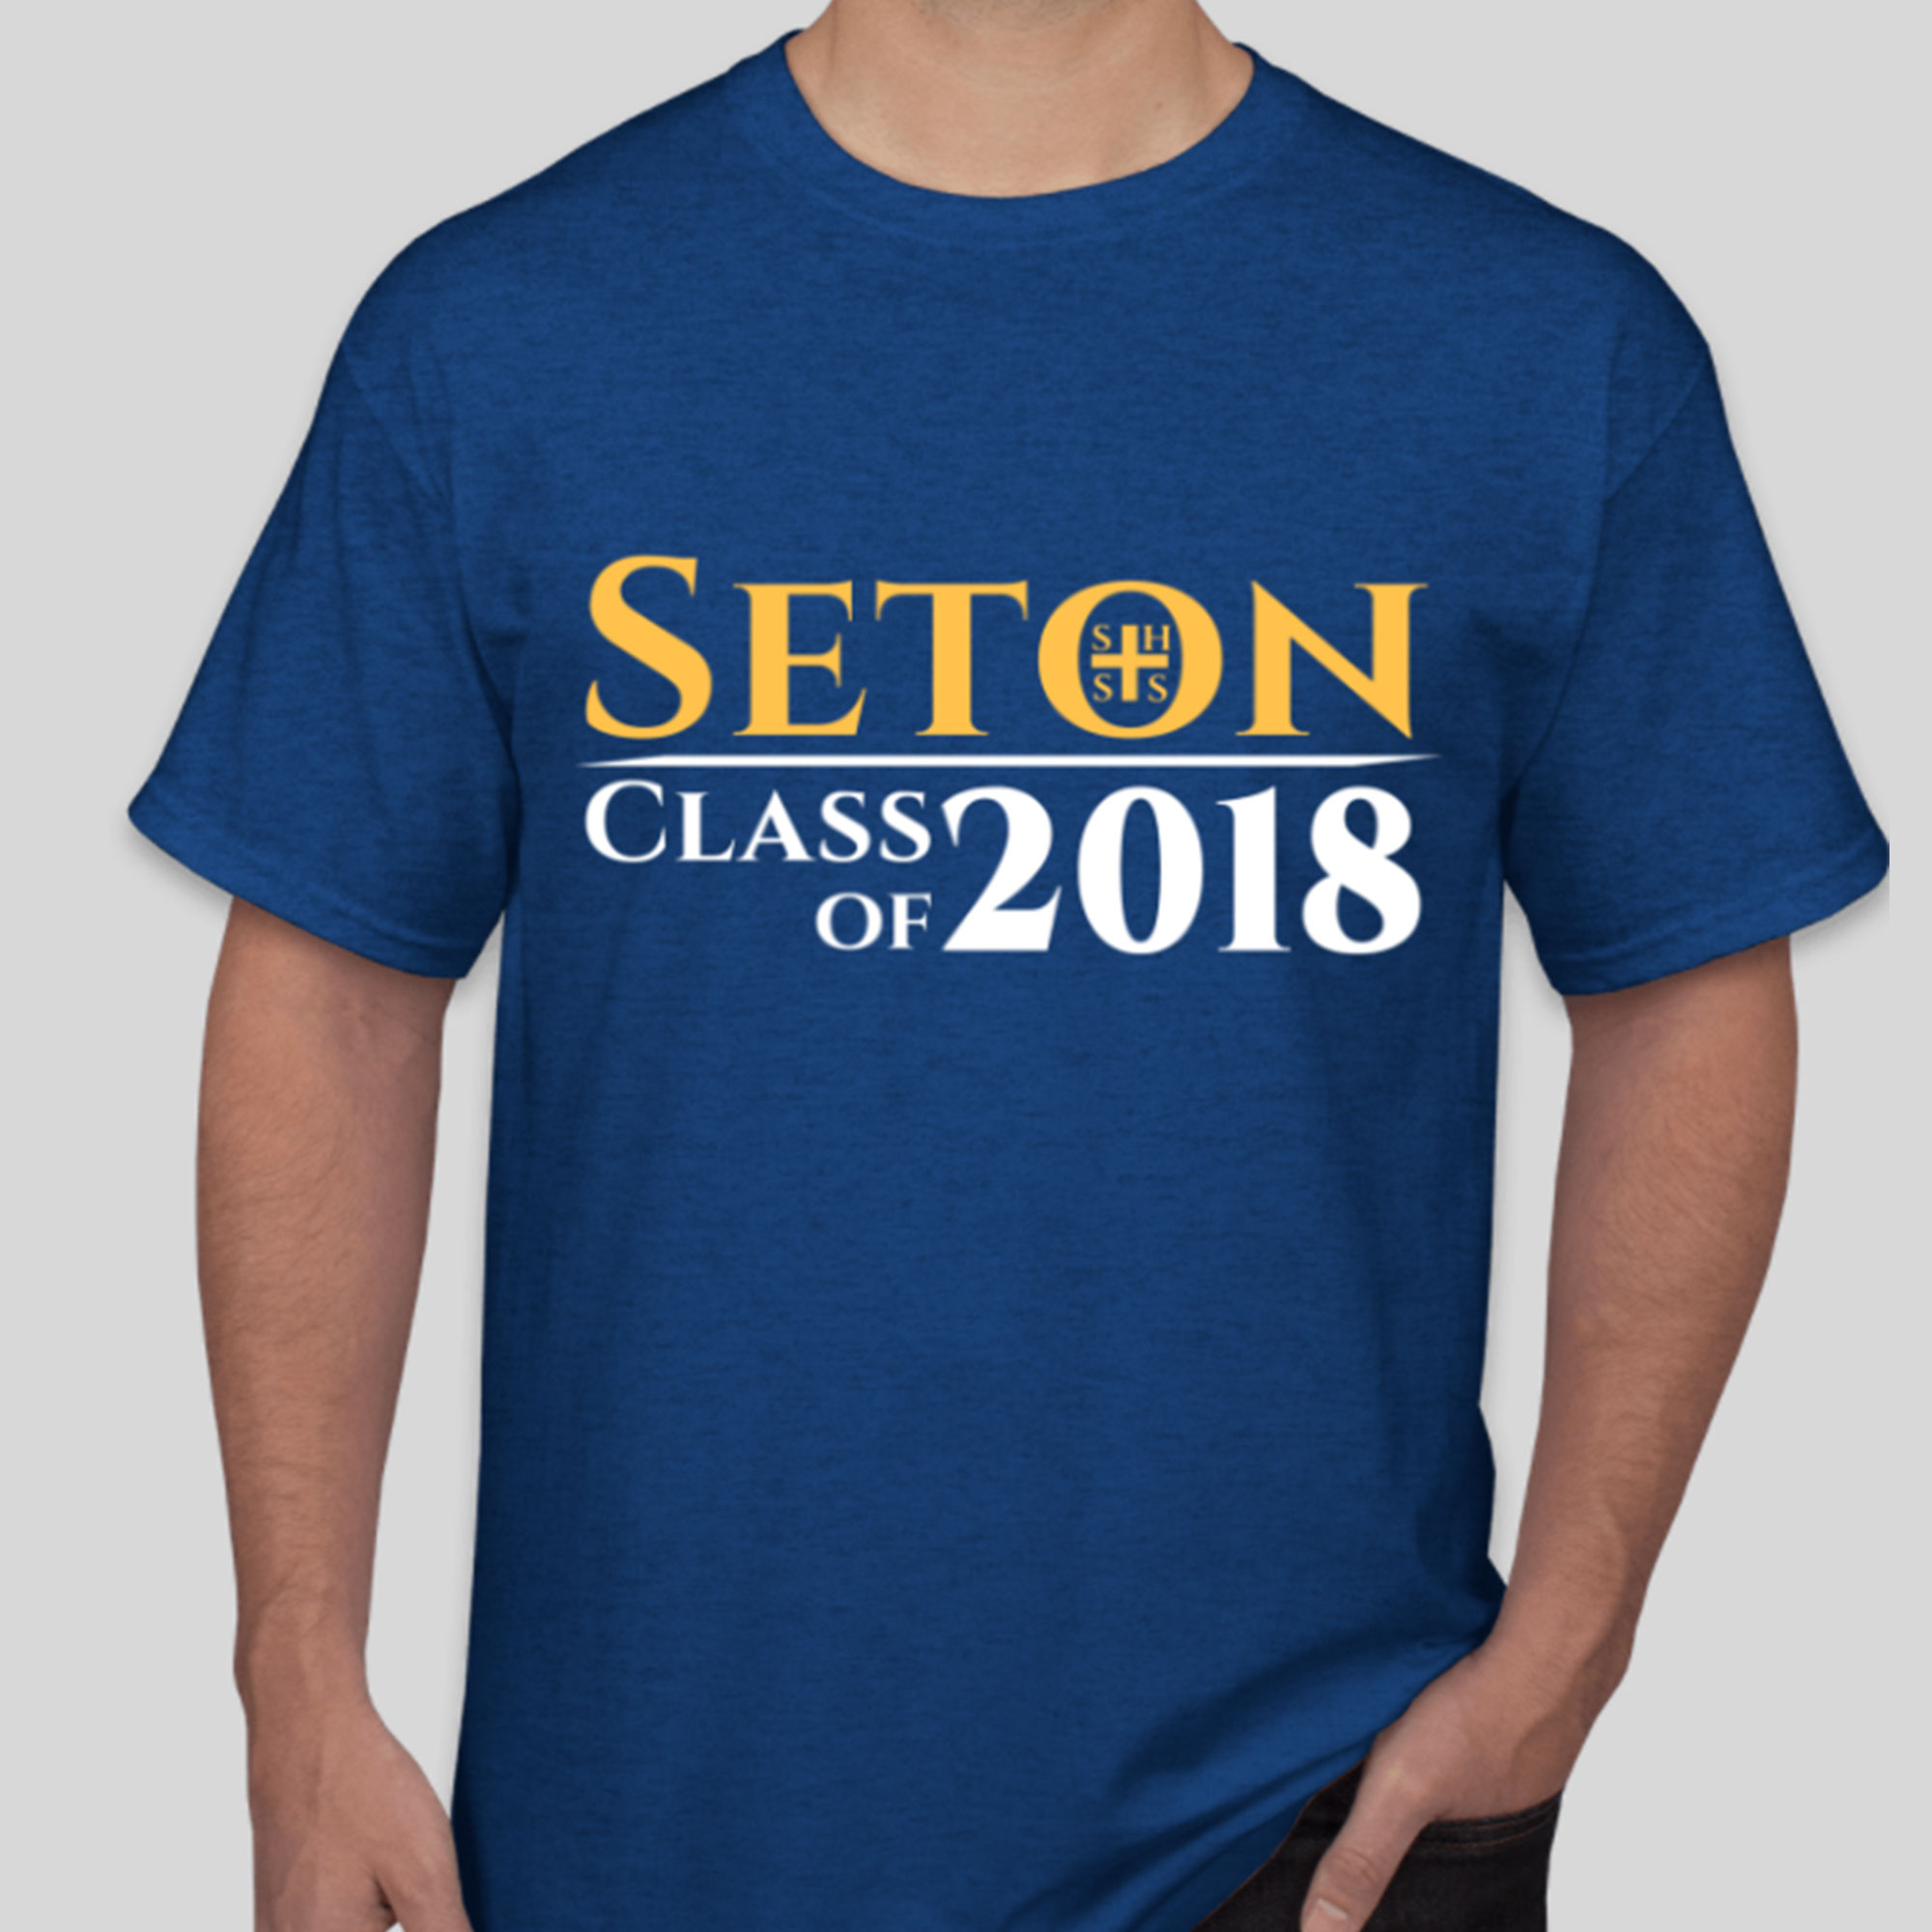 Seton Class of 2018 T-Shirt Adult X-Large